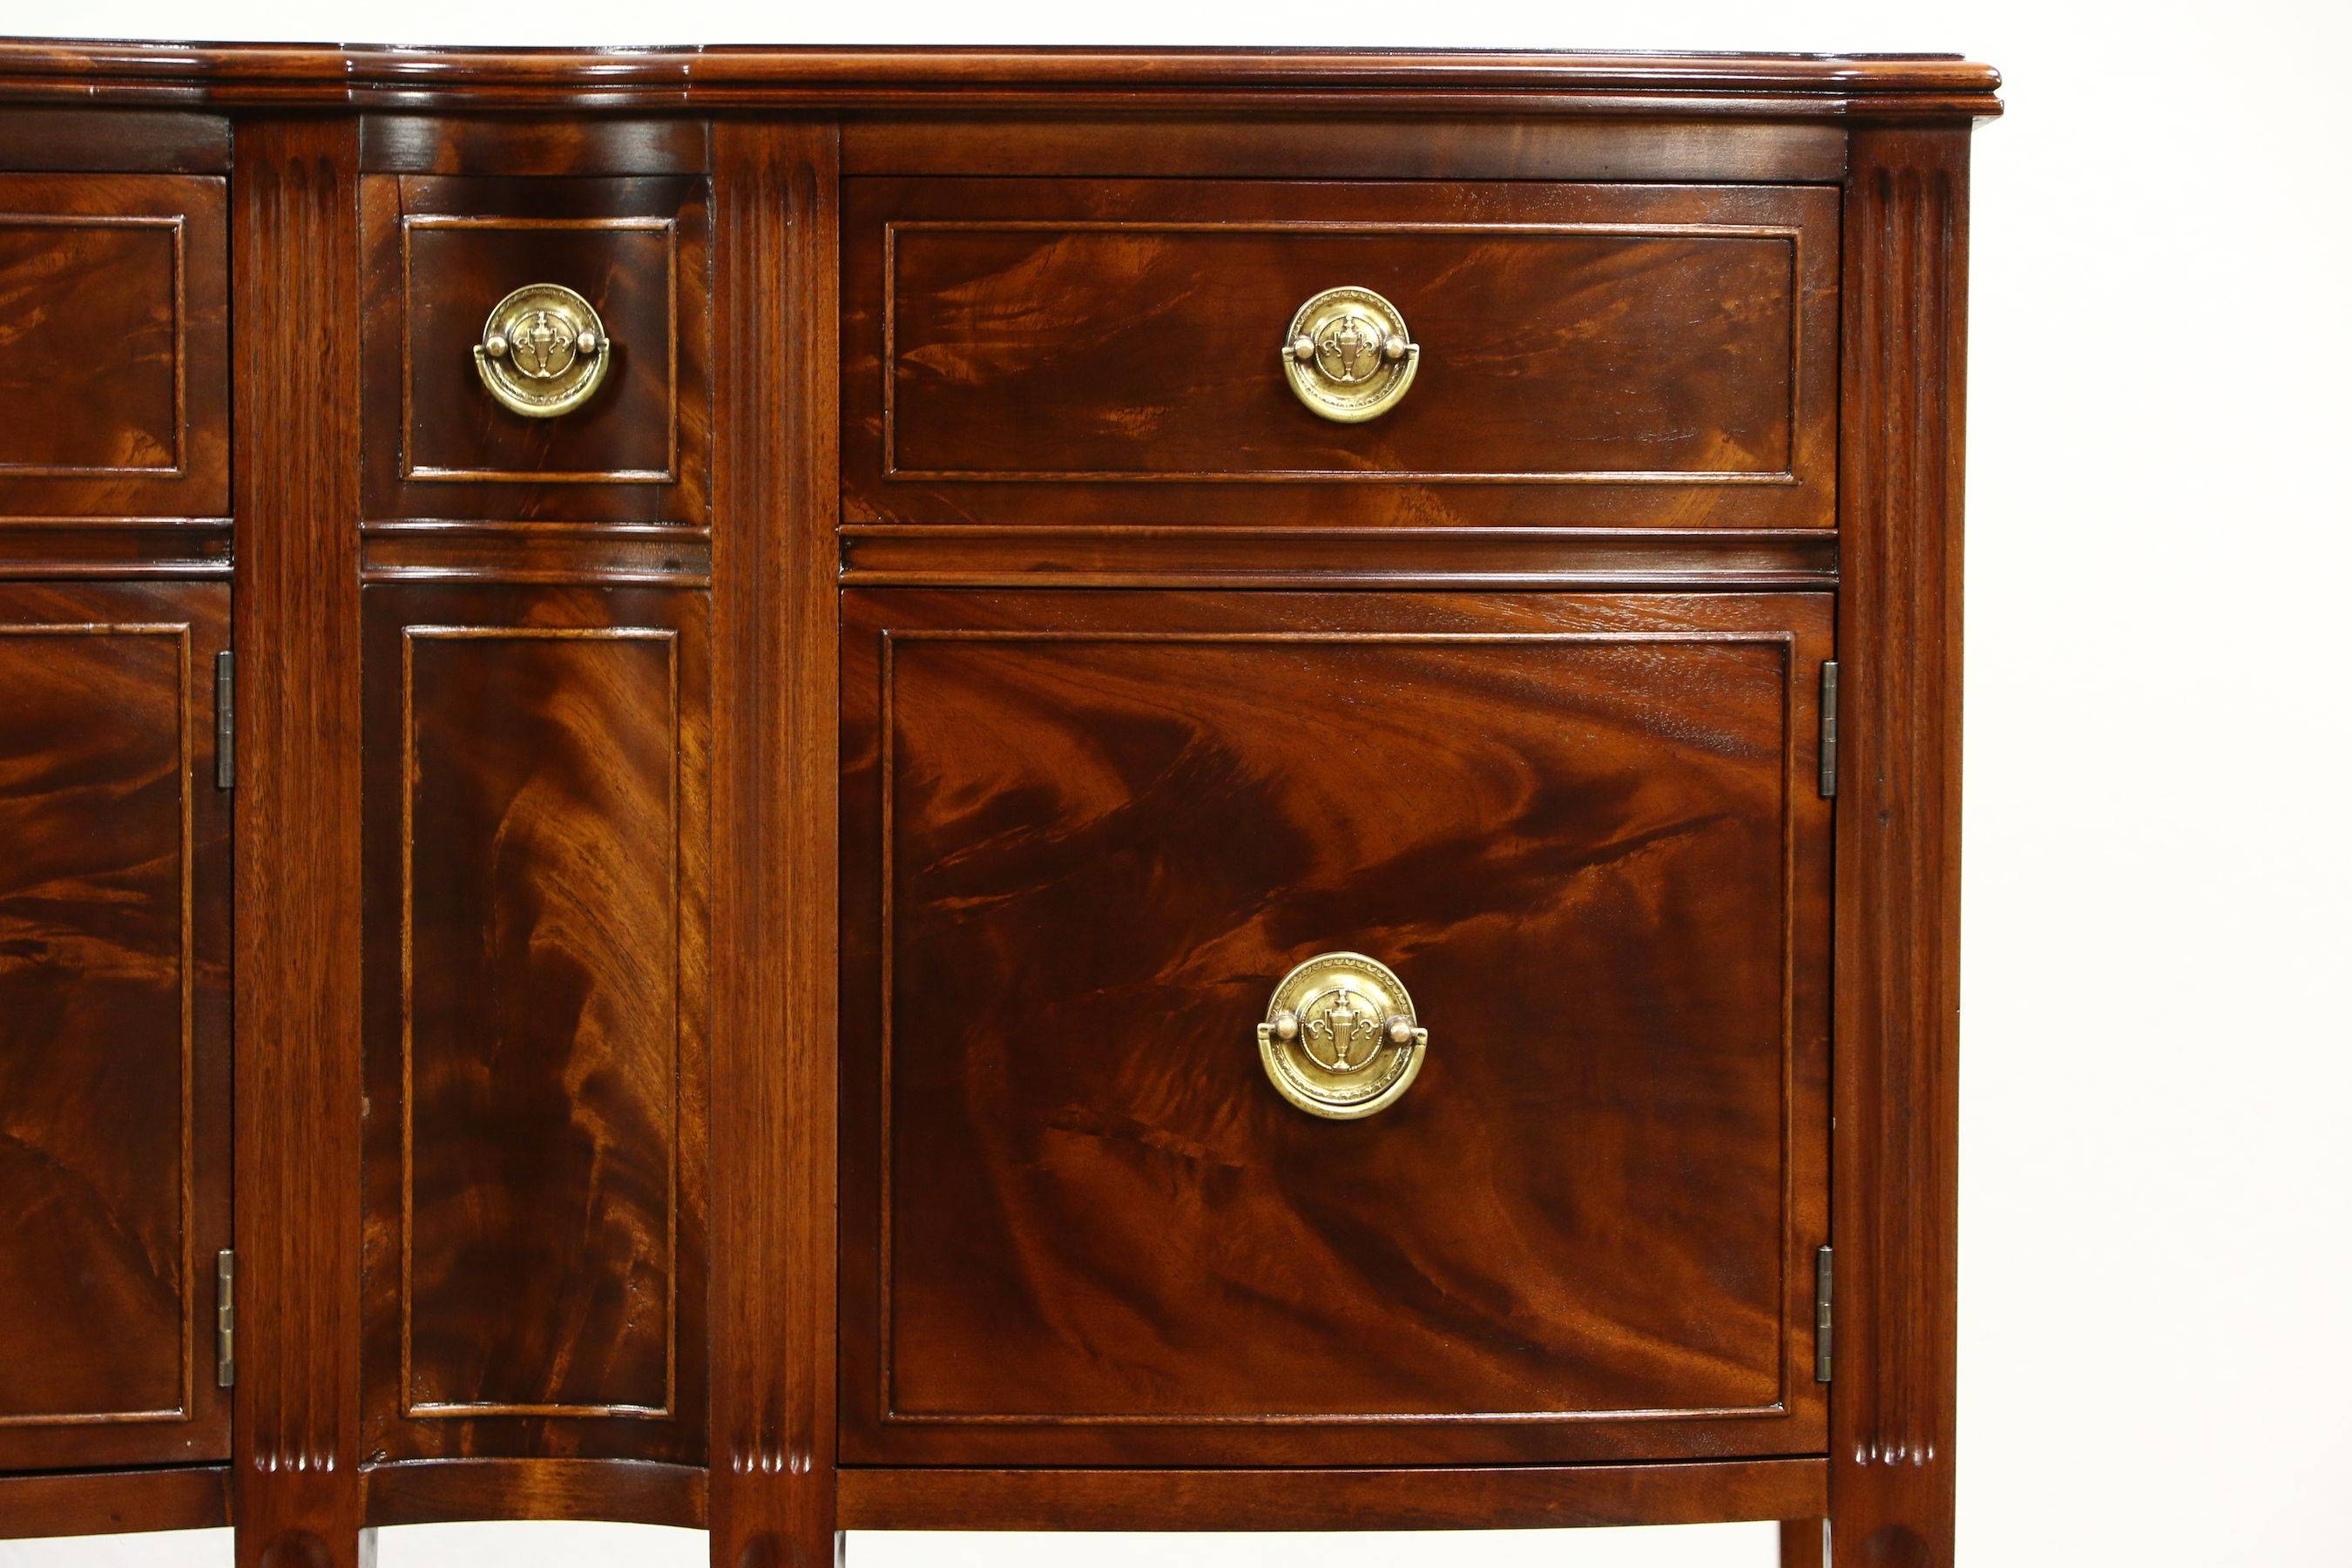 Traditional Mahogany Sideboard, Server Or Buffet, 1930's Vintage Pertaining To Traditional Sideboards (View 13 of 15)